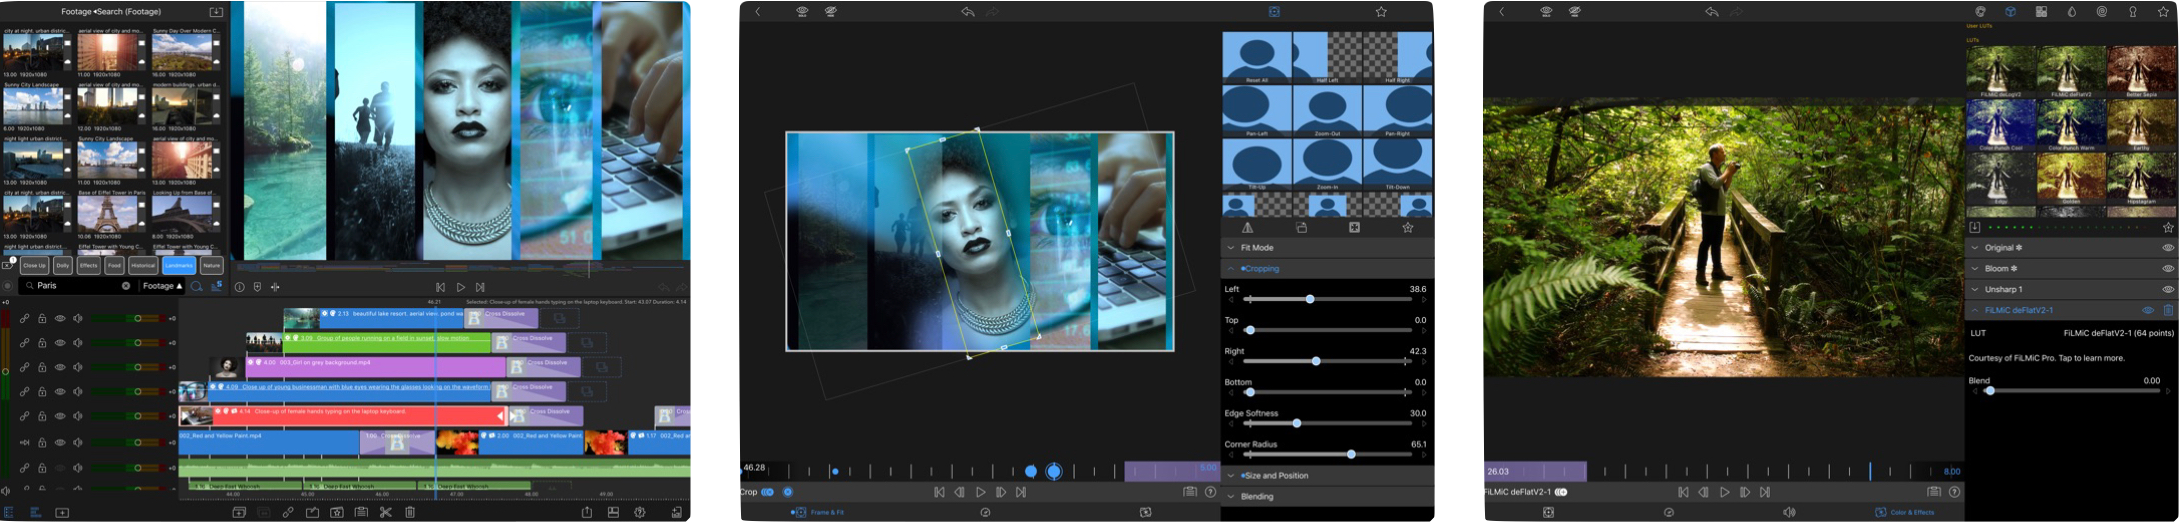 Video Editing App LumaFusion 2.0 On Sale for $14.99